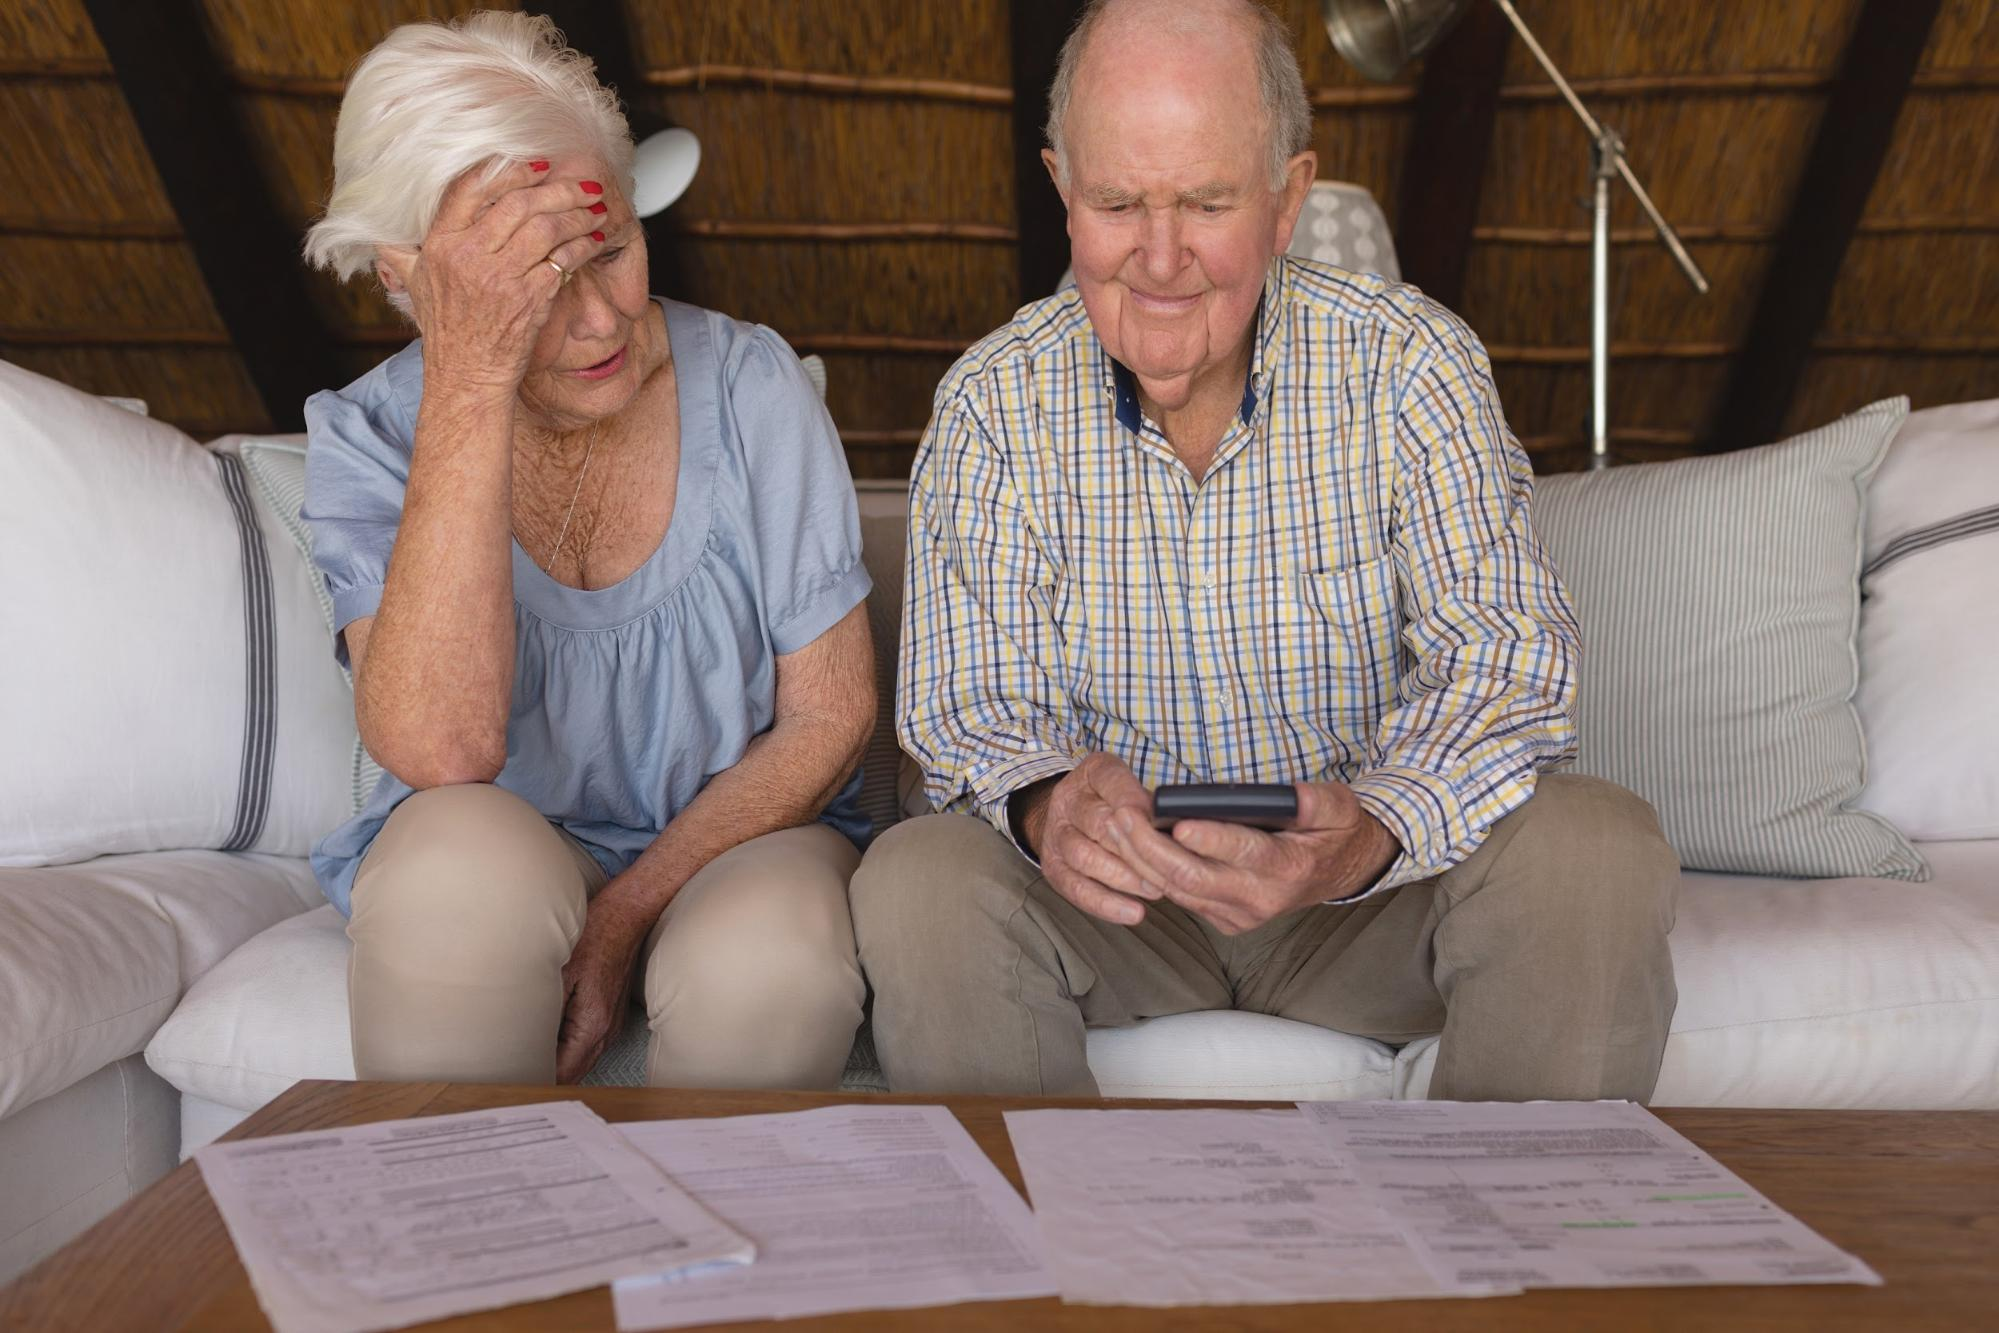 Elderly couple discussing and computing their hospital bills